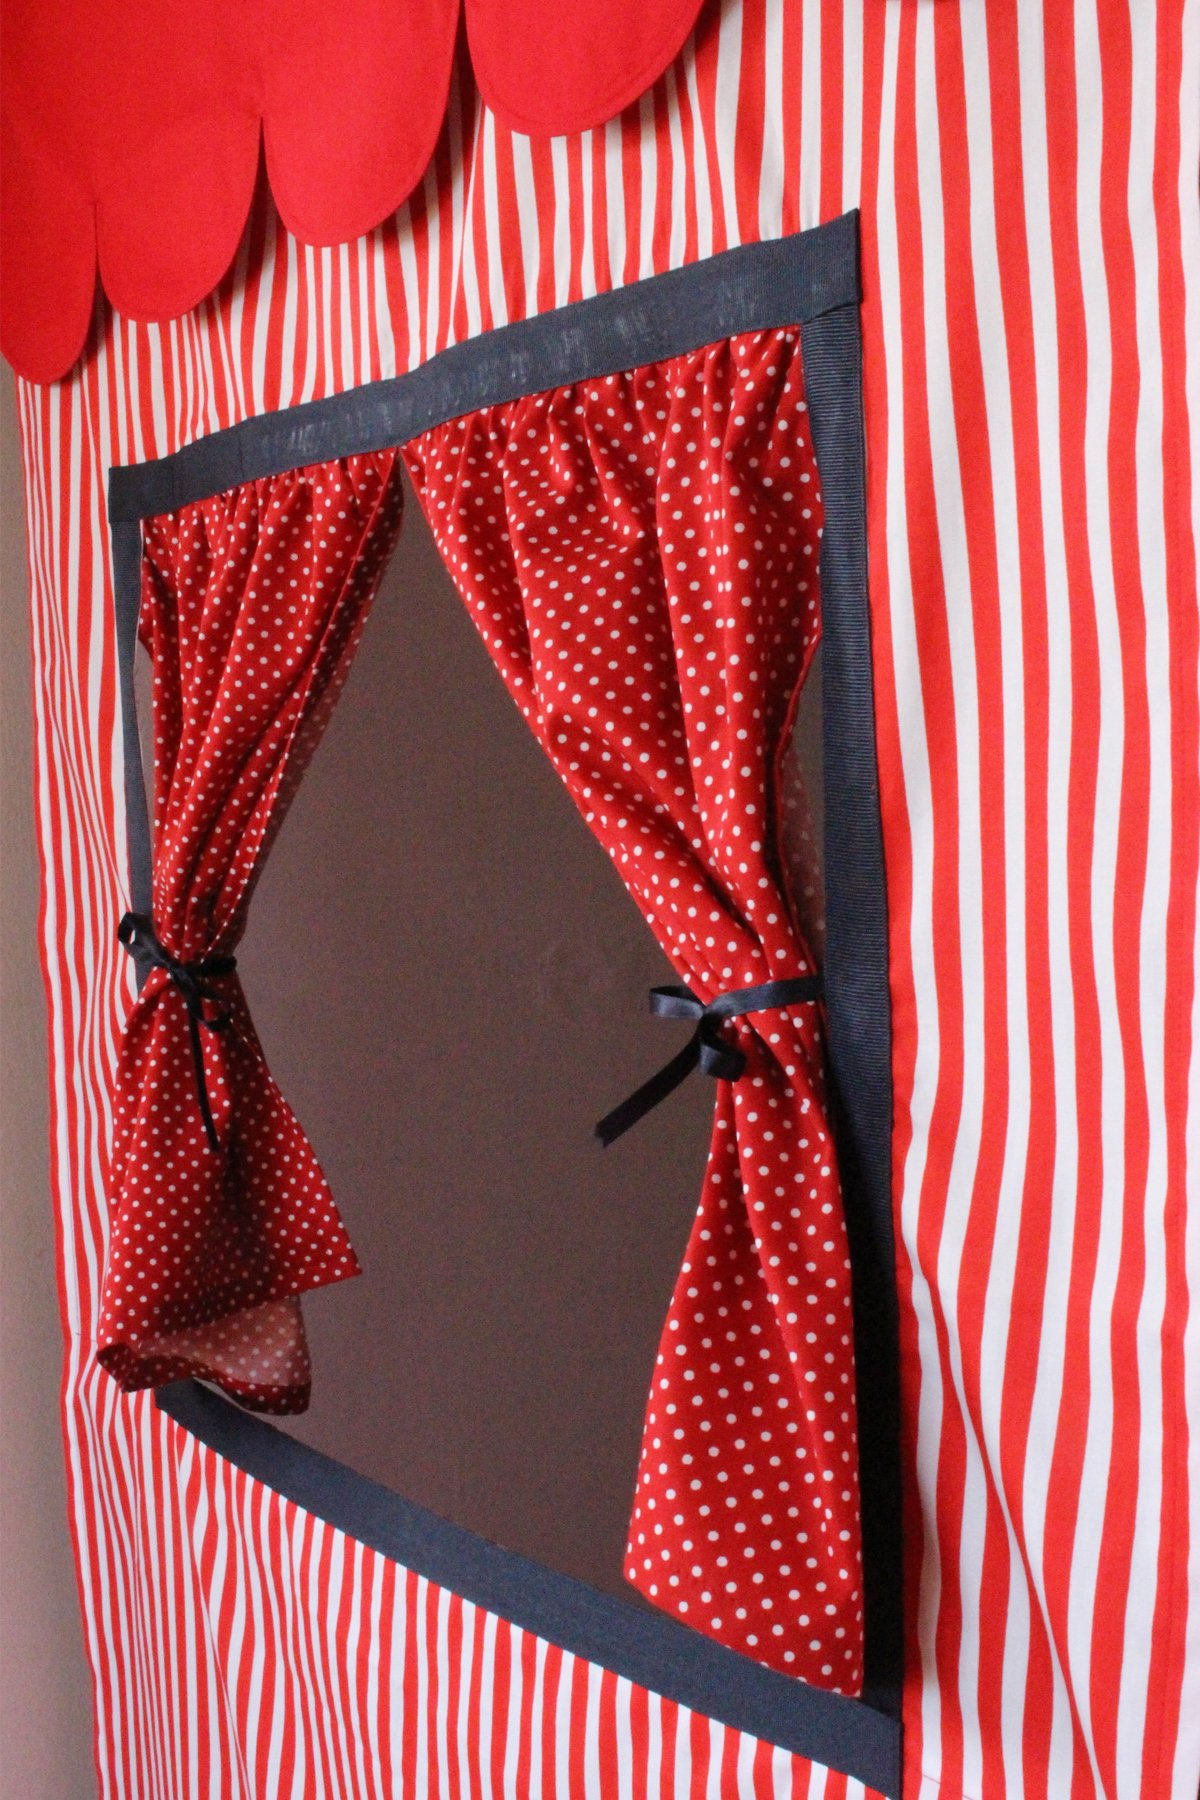 Doorway Puppet Theatre Curtains